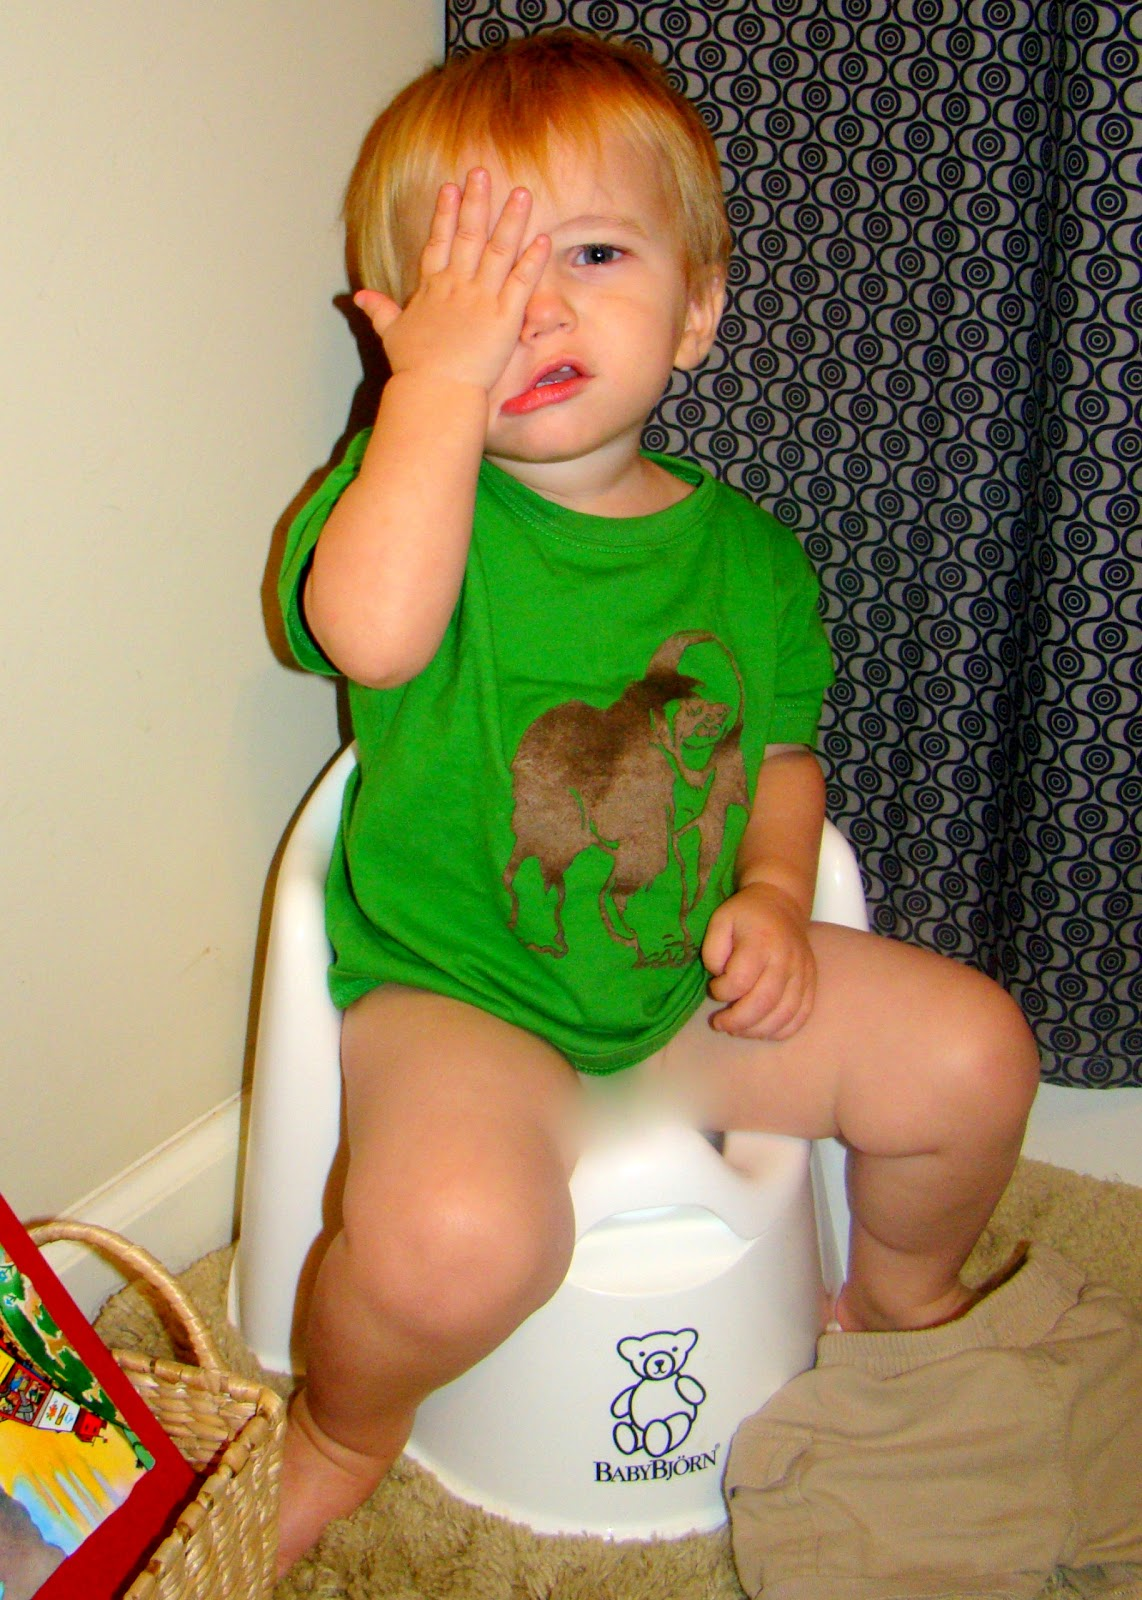 Almost Wordless Wednesday: Potty